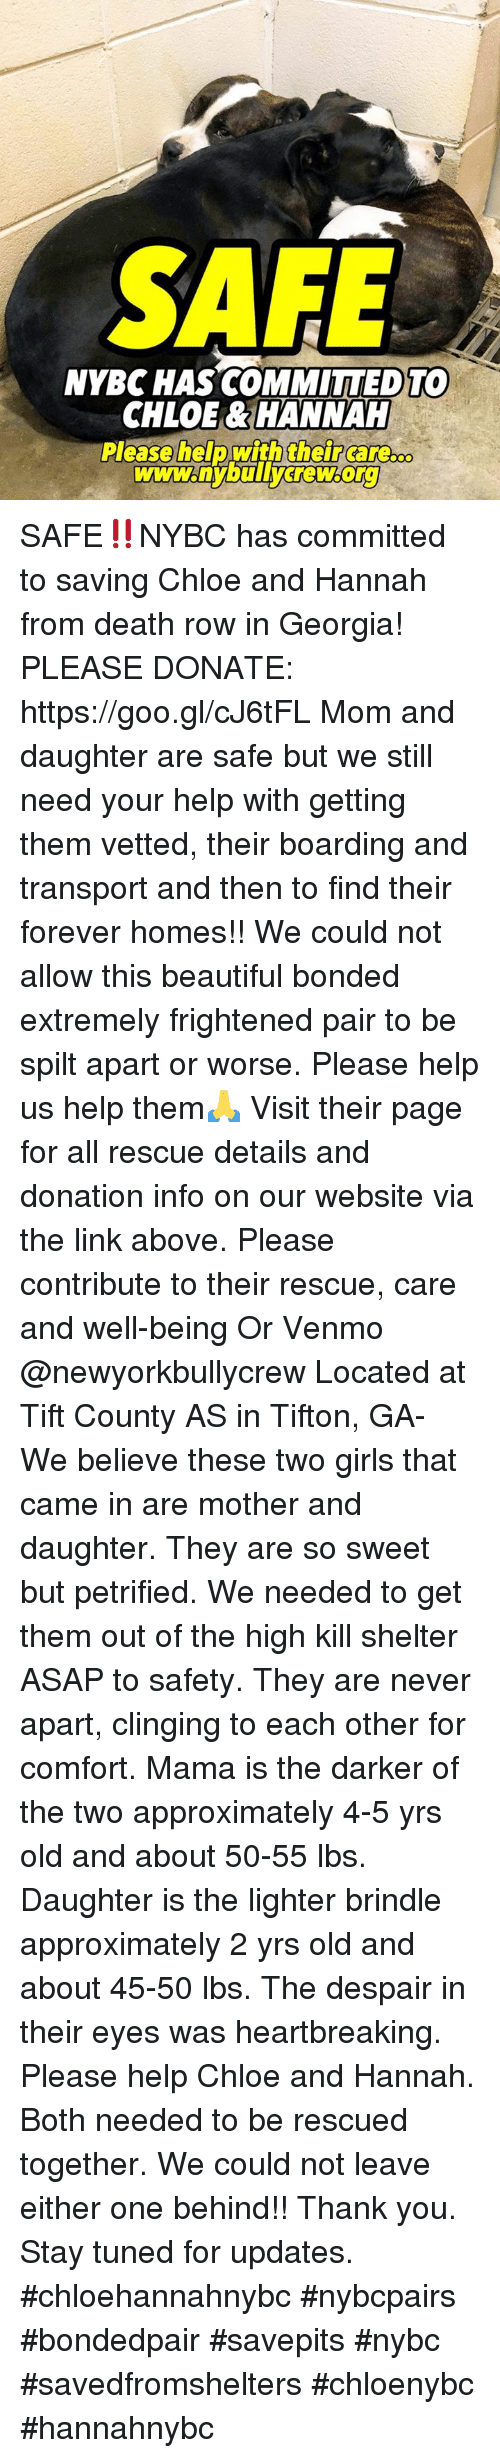 Beautiful, Girls, and Memes: NYBC HAS COMMITTED TO  CHLOE& HANNAH  Please help withtheircarG  www.nybu SAFE‼️NYBC has committed to saving Chloe and Hannah from death row in Georgia! PLEASE DONATE: https://goo.gl/cJ6tFL  Mom and daughter are safe but we still need your help with getting them vetted, their boarding and transport and then to find their forever homes!! We could not allow this beautiful bonded extremely frightened pair to be spilt apart or worse. Please help us help them🙏  Visit their page for all rescue details and donation info on our website via the link above. Please contribute to  their rescue, care and well-being Or Venmo @newyorkbullycrew   Located at Tift County AS  in Tifton, GA- We believe these two girls that came in are mother and daughter. They are so sweet but  petrified.  We needed to get them out of the high kill shelter ASAP to safety. They are never apart, clinging to each other for comfort. Mama is the darker of the two approximately 4-5 yrs old and about 50-55 lbs. Daughter is the lighter brindle approximately 2 yrs old and about 45-50 lbs. The despair in their eyes was heartbreaking.  Please help Chloe and Hannah.  Both needed to be rescued together. We could not leave either one behind!! Thank you. Stay tuned for updates.   #chloehannahnybc #nybcpairs #bondedpair #savepits #nybc #savedfromshelters #chloenybc #hannahnybc